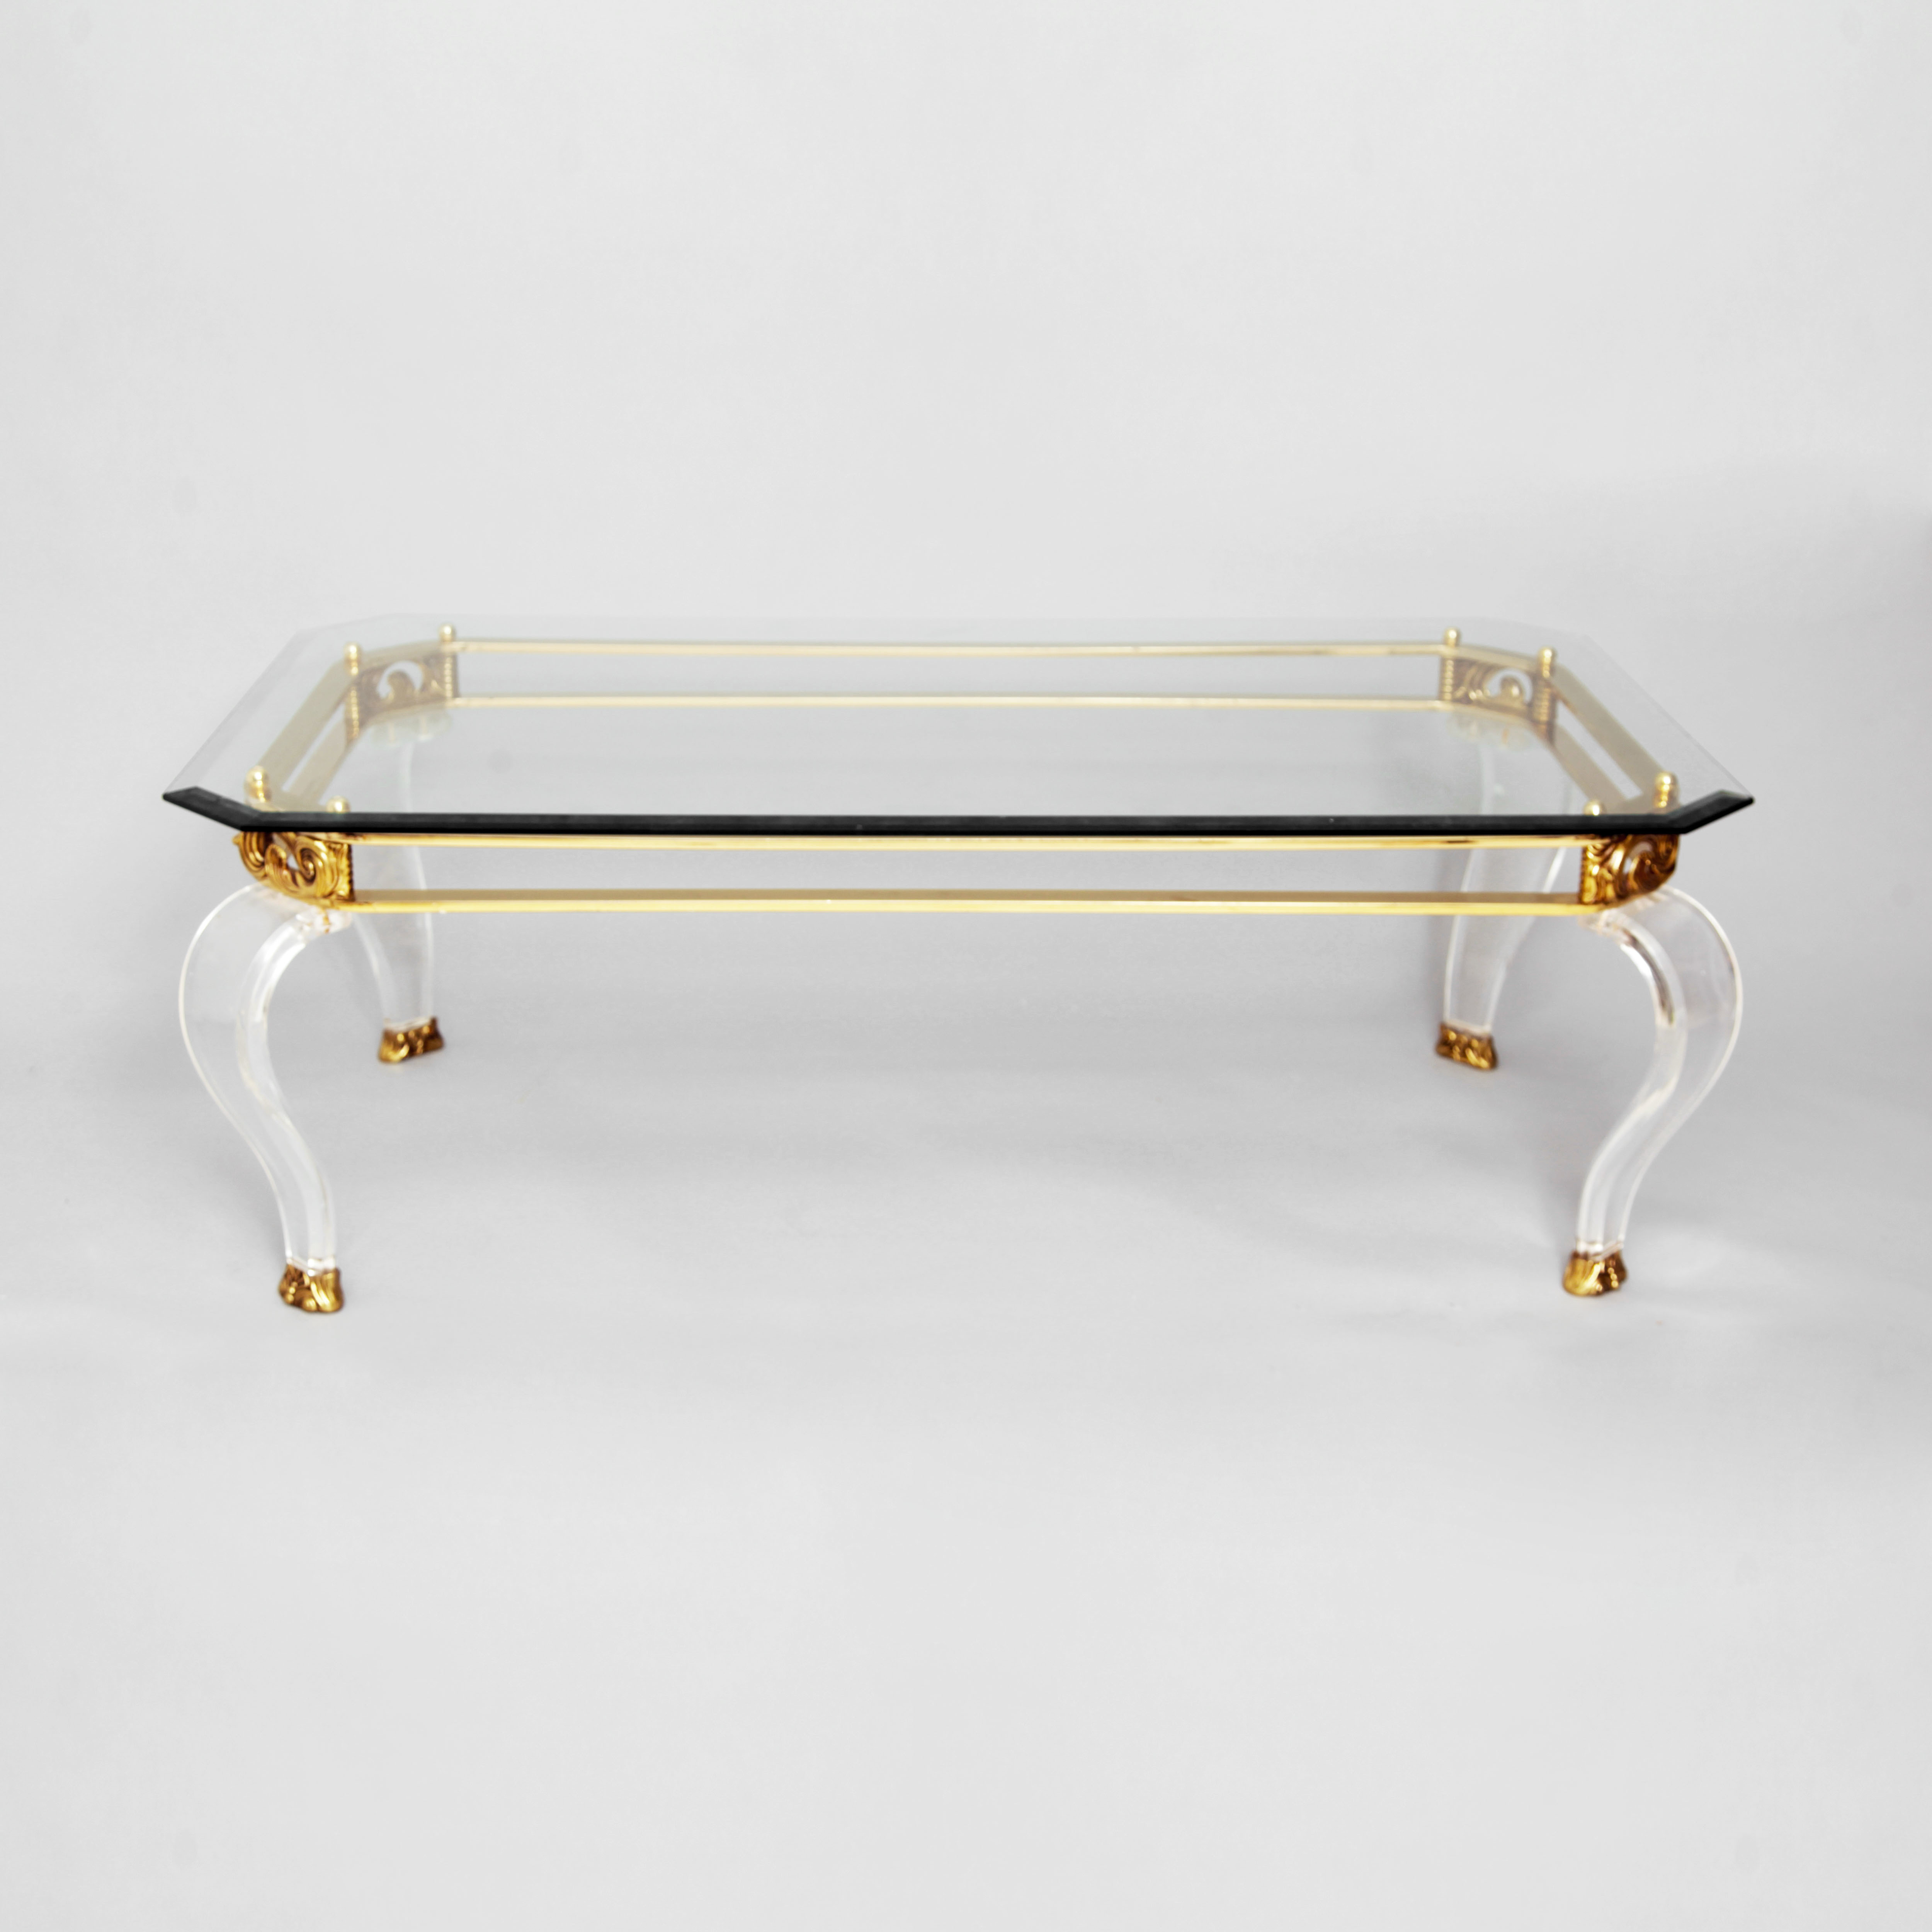 Rectangular Coffee Tables With Brass Legs Throughout Well Liked Brass & Curved Lucite Legs Coffee Table (View 13 of 20)